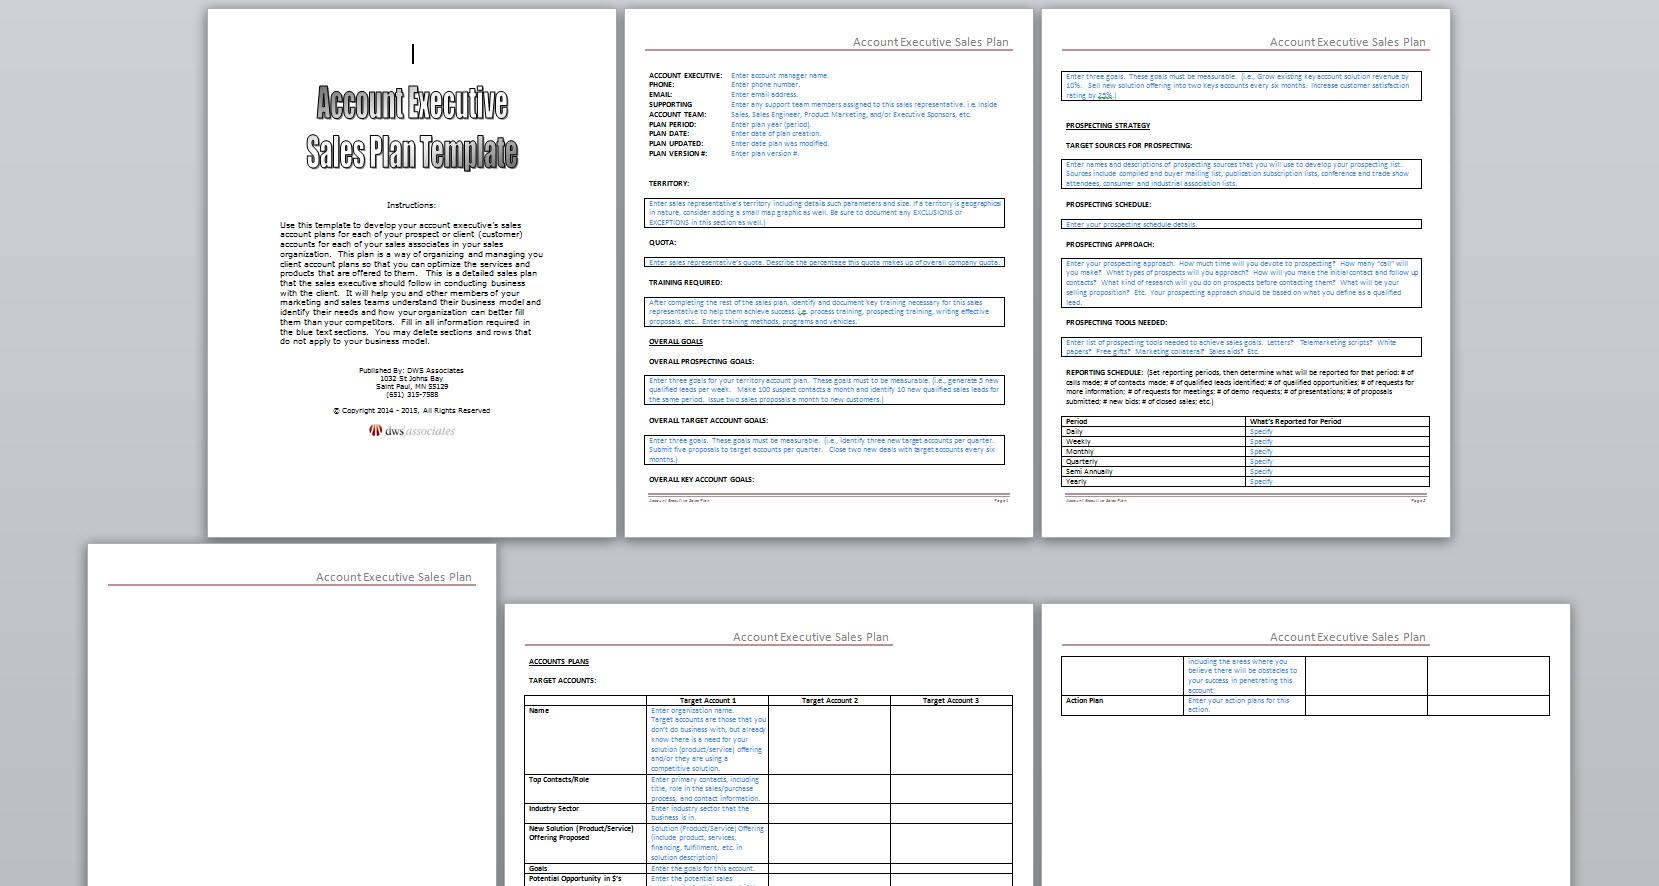 account executive sales plan template – Template for Sales Plan